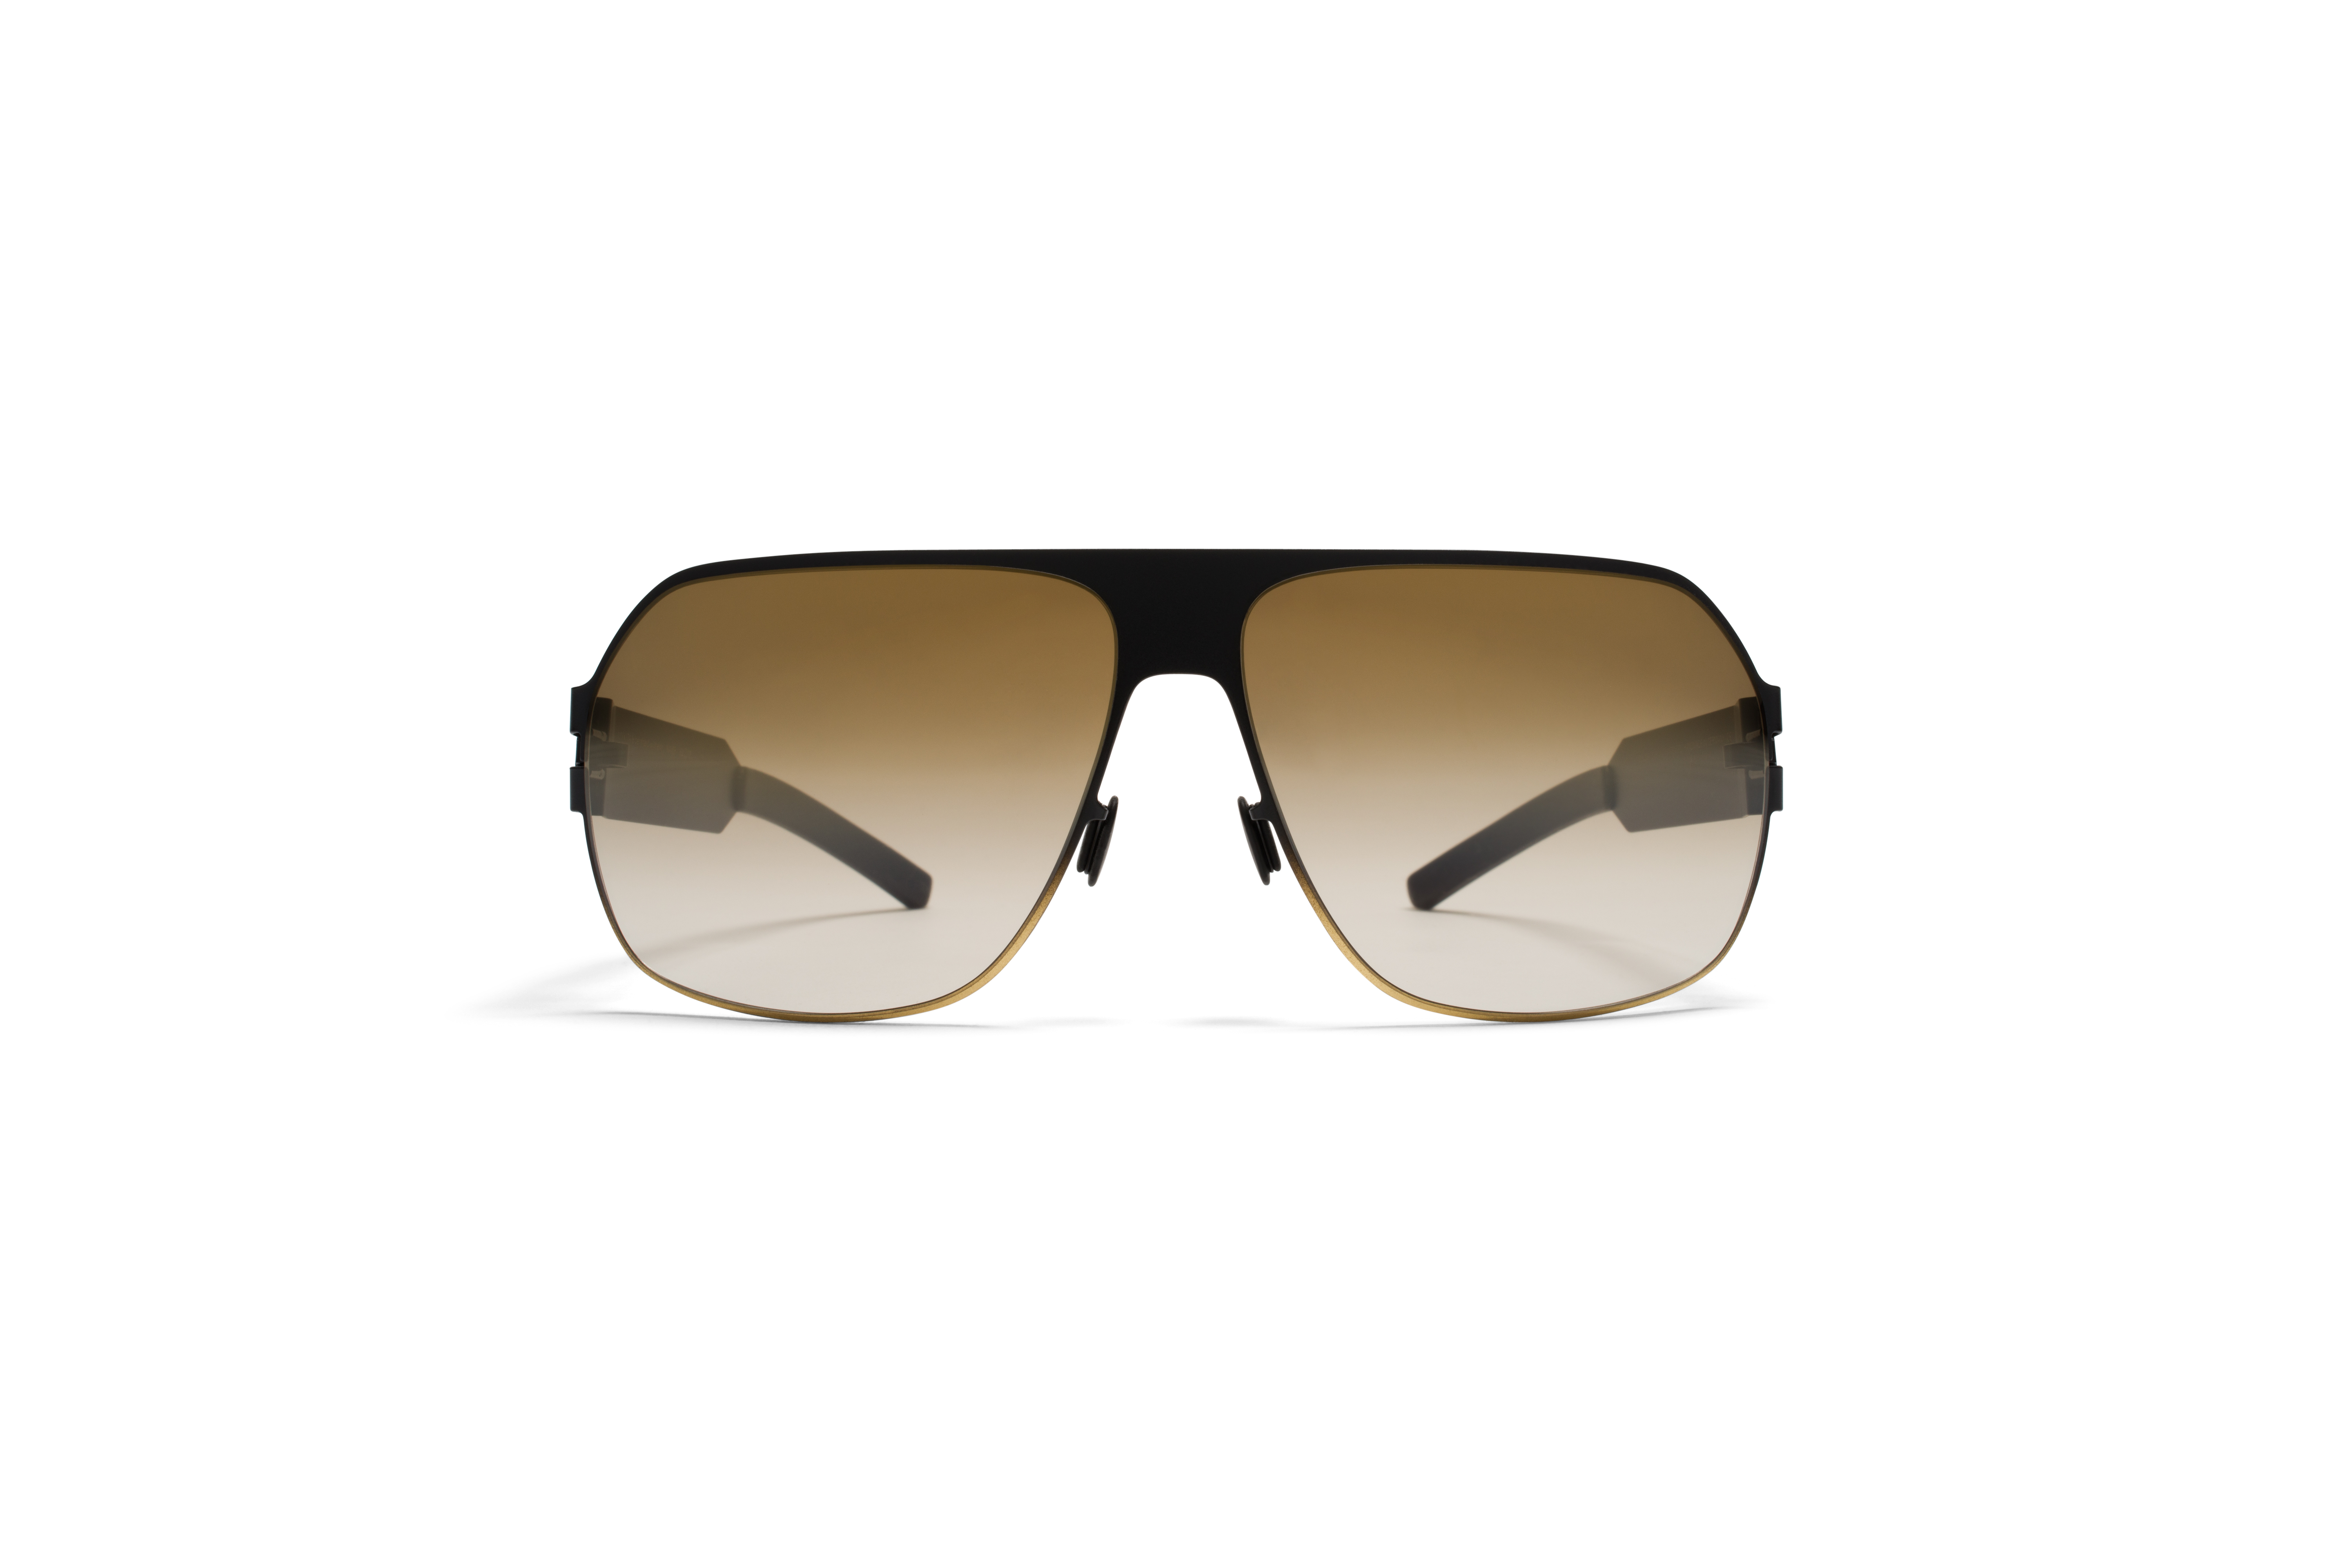 Mykita Bw Sun Xaver F67 Black Gold Brown Gradient56fbf7285dea1